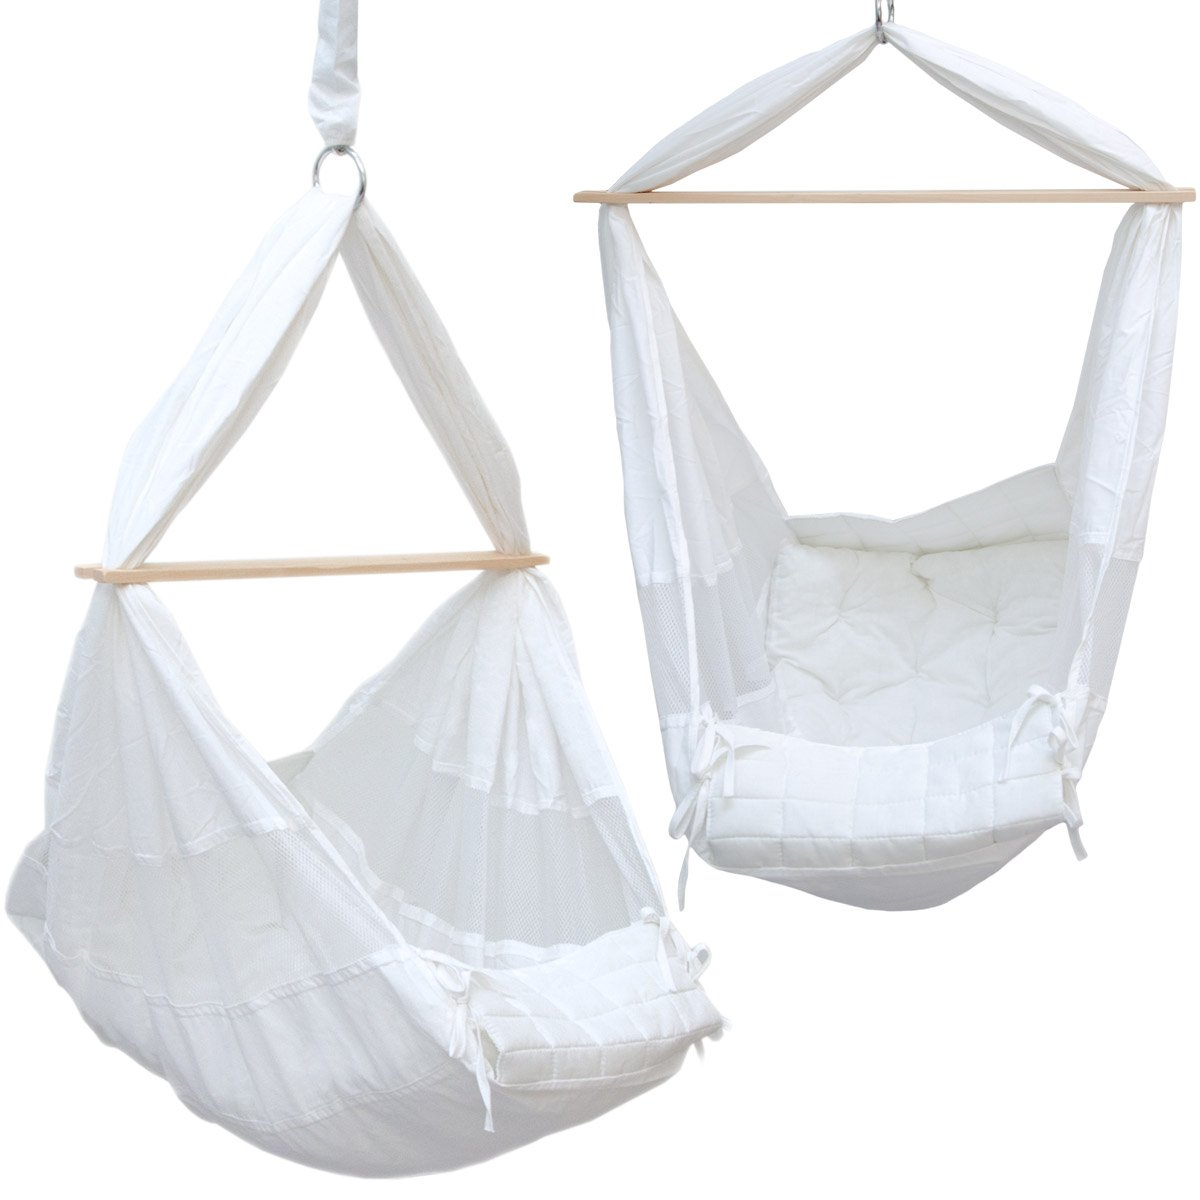 dunedesign baby hammock   100  cotton suspended cradle with wooden spreader and metal carabiners   poco baby natures nest motion bed hammock package   colour raw      rh   amazon co uk